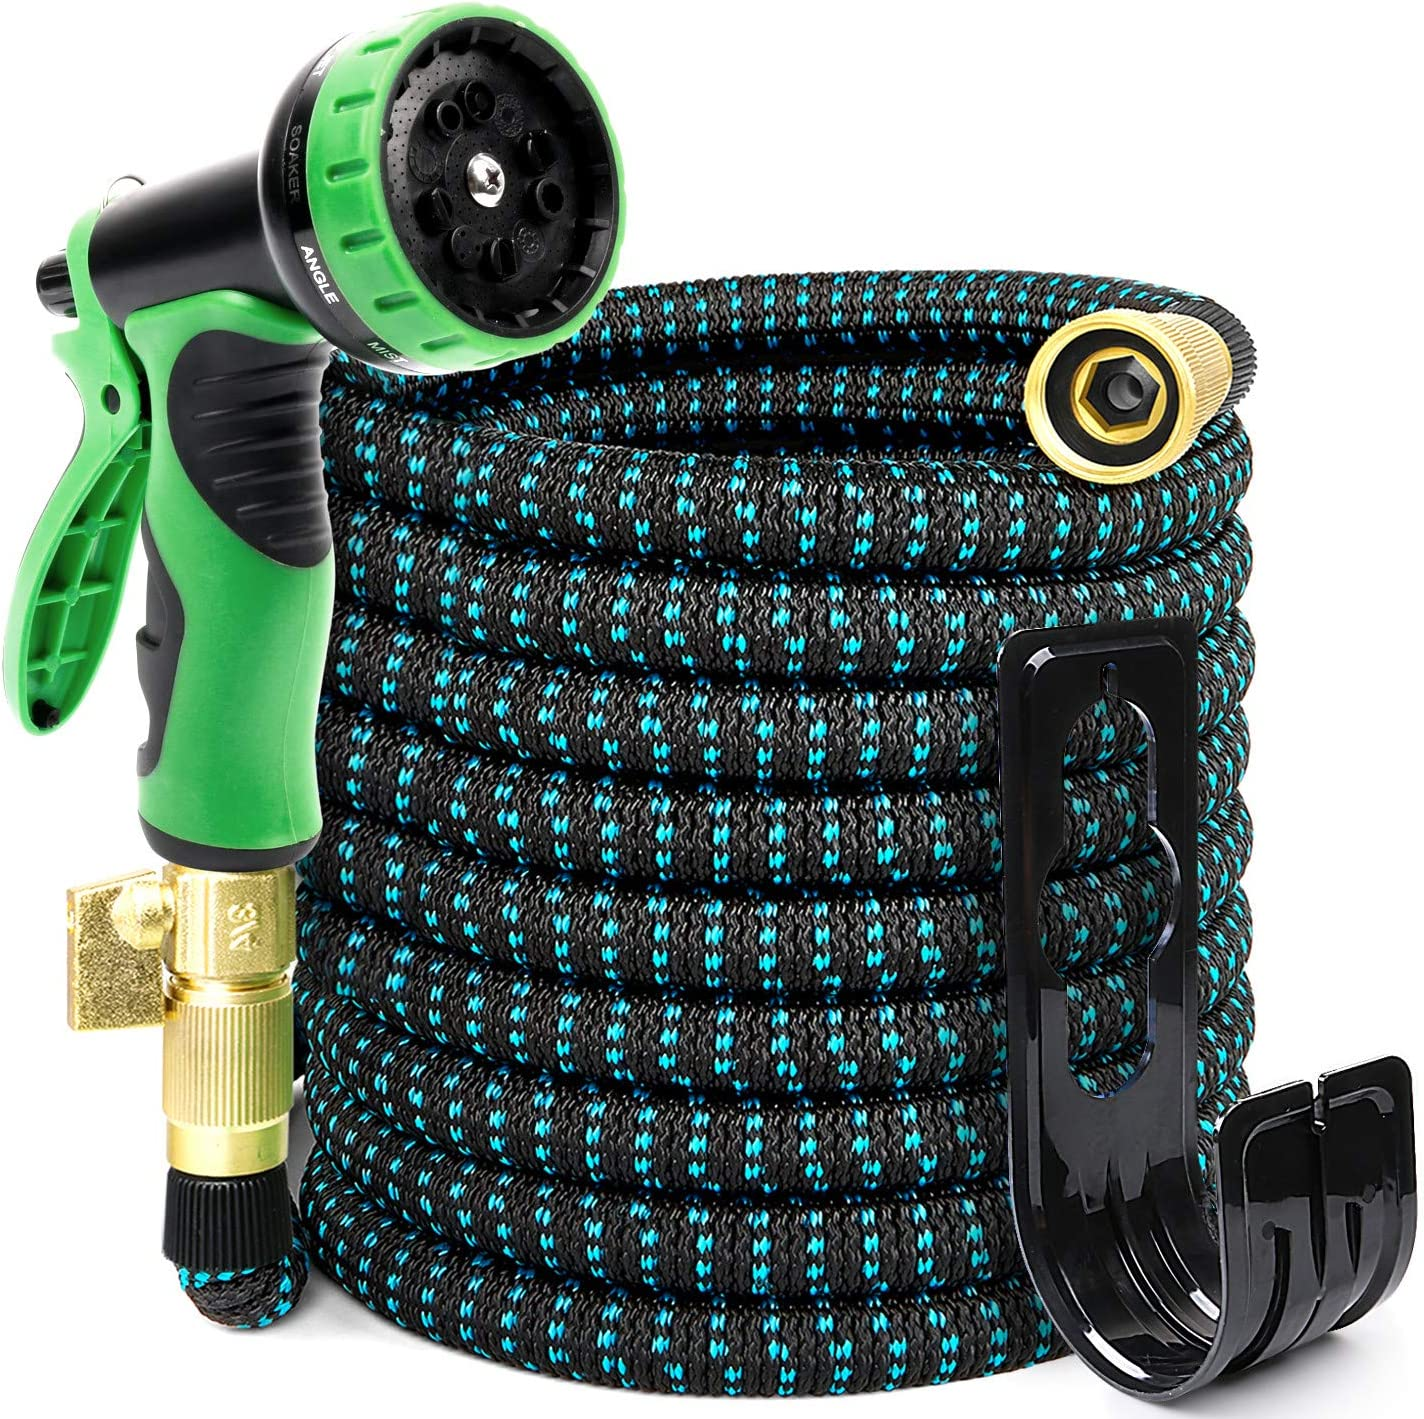 PUUKU 30FT Expandable Garden Hose Kink Free Water Hoses with 9 Functions Nozz...